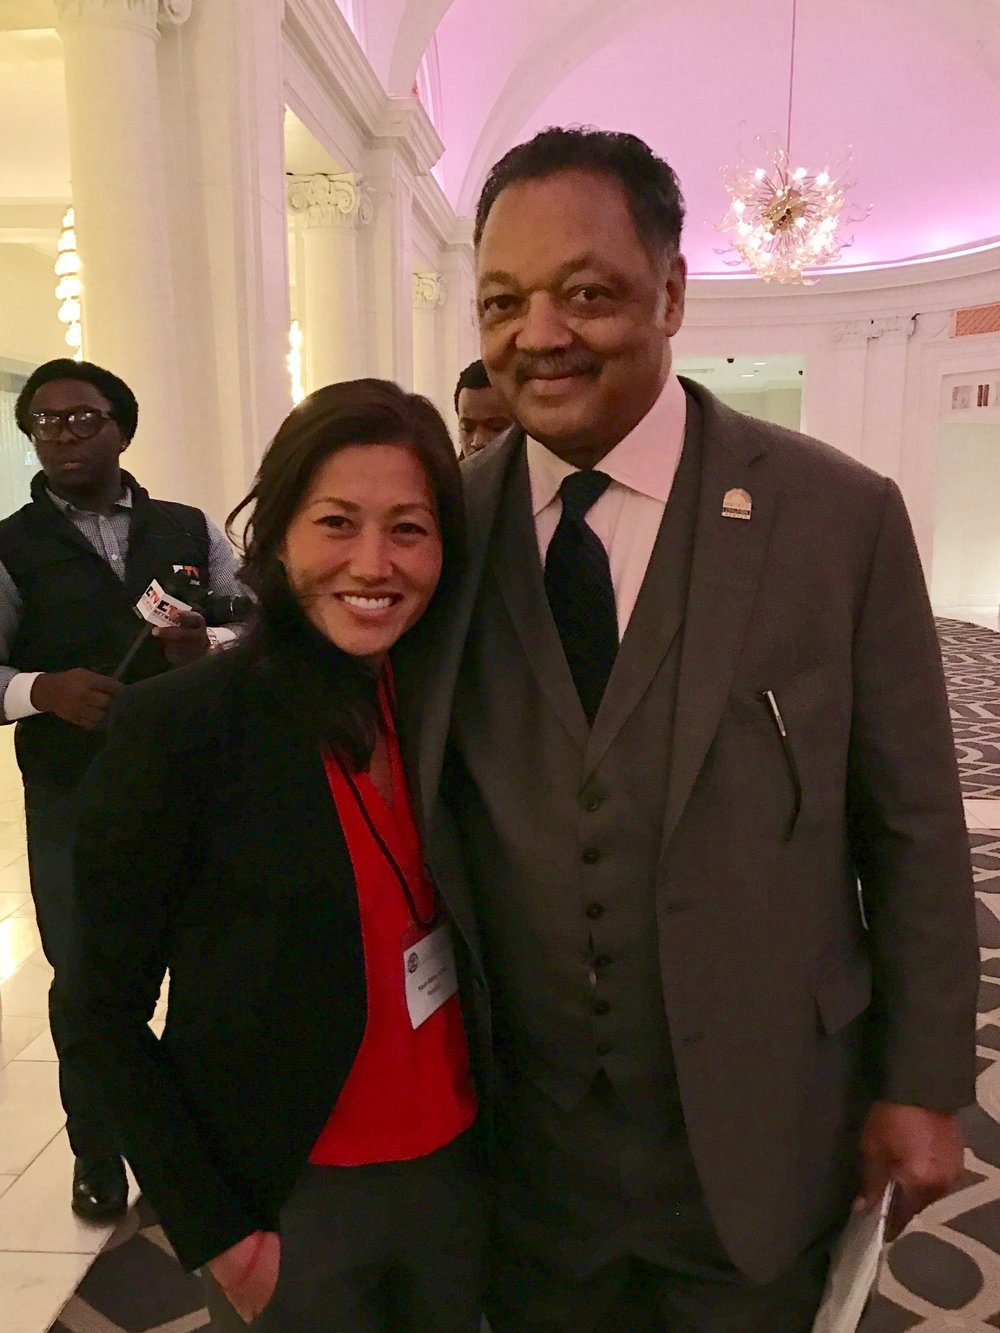 Bonding moment with @RevJJackson @WallStreetProj while presenting on evolution of healthcare at the 20th Annual Wall Street Summit